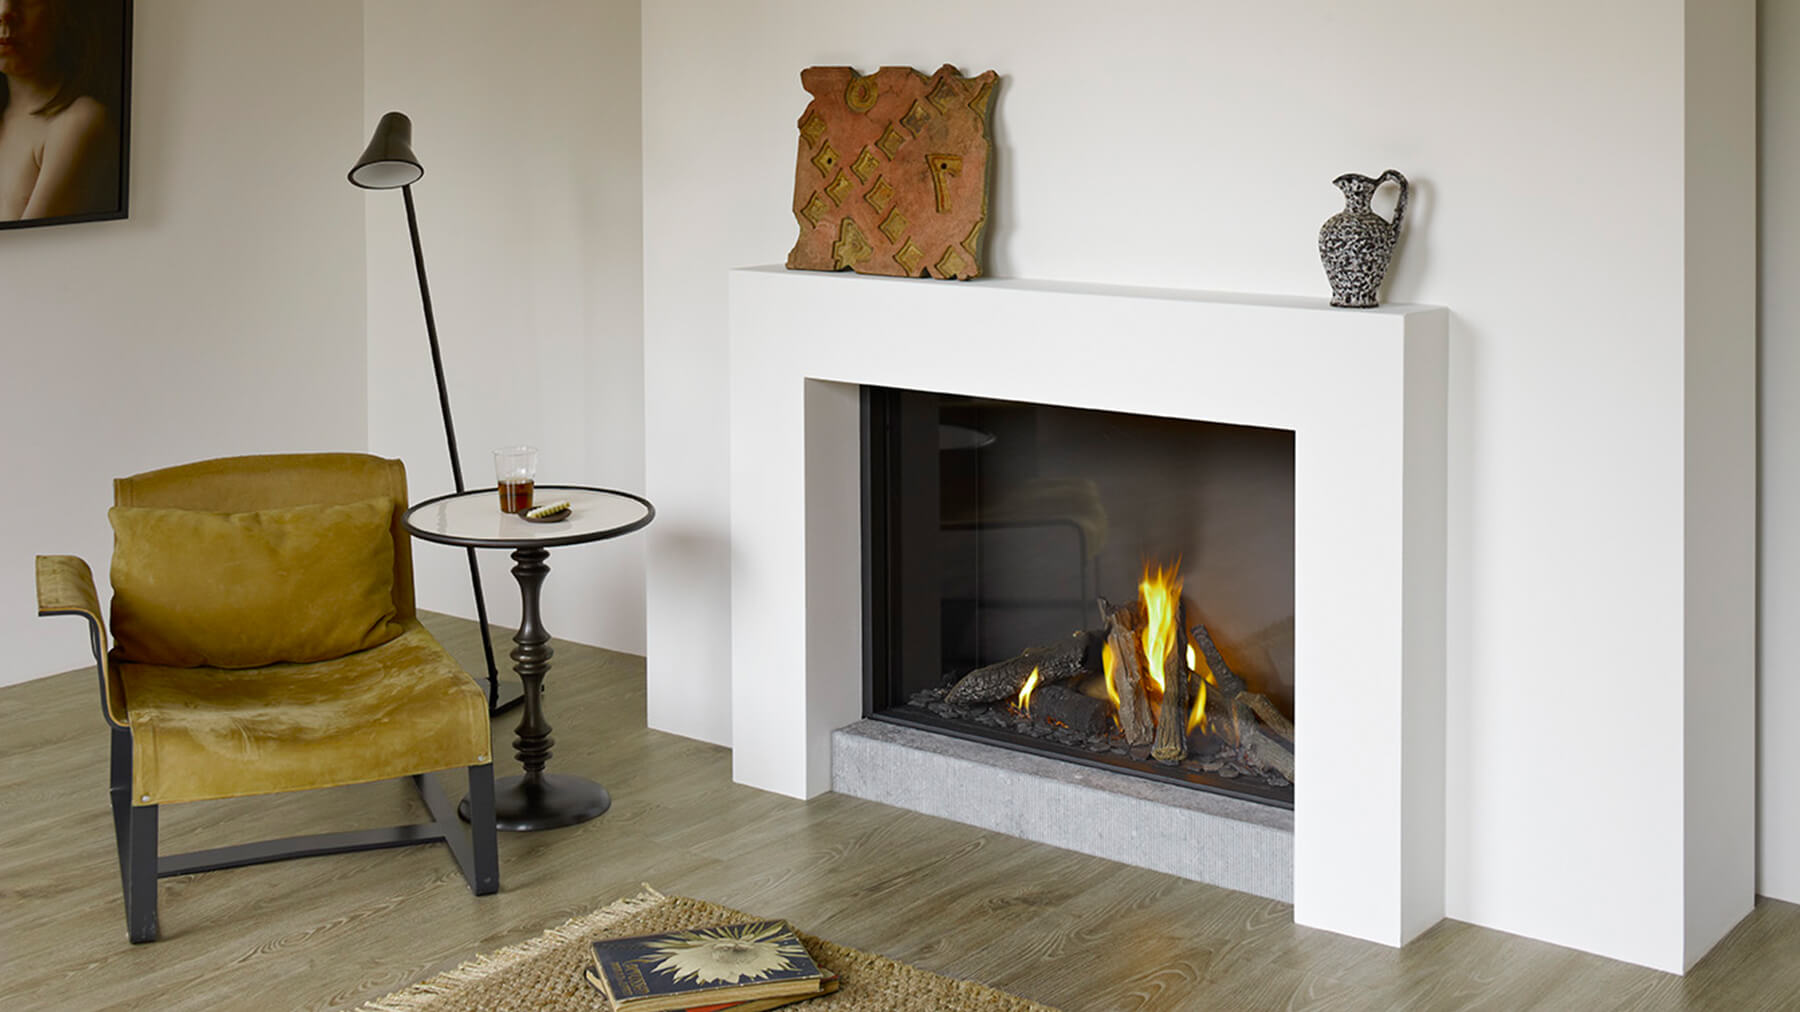 Efficiency of gas fireplace - Large High Efficiency Gas Fire